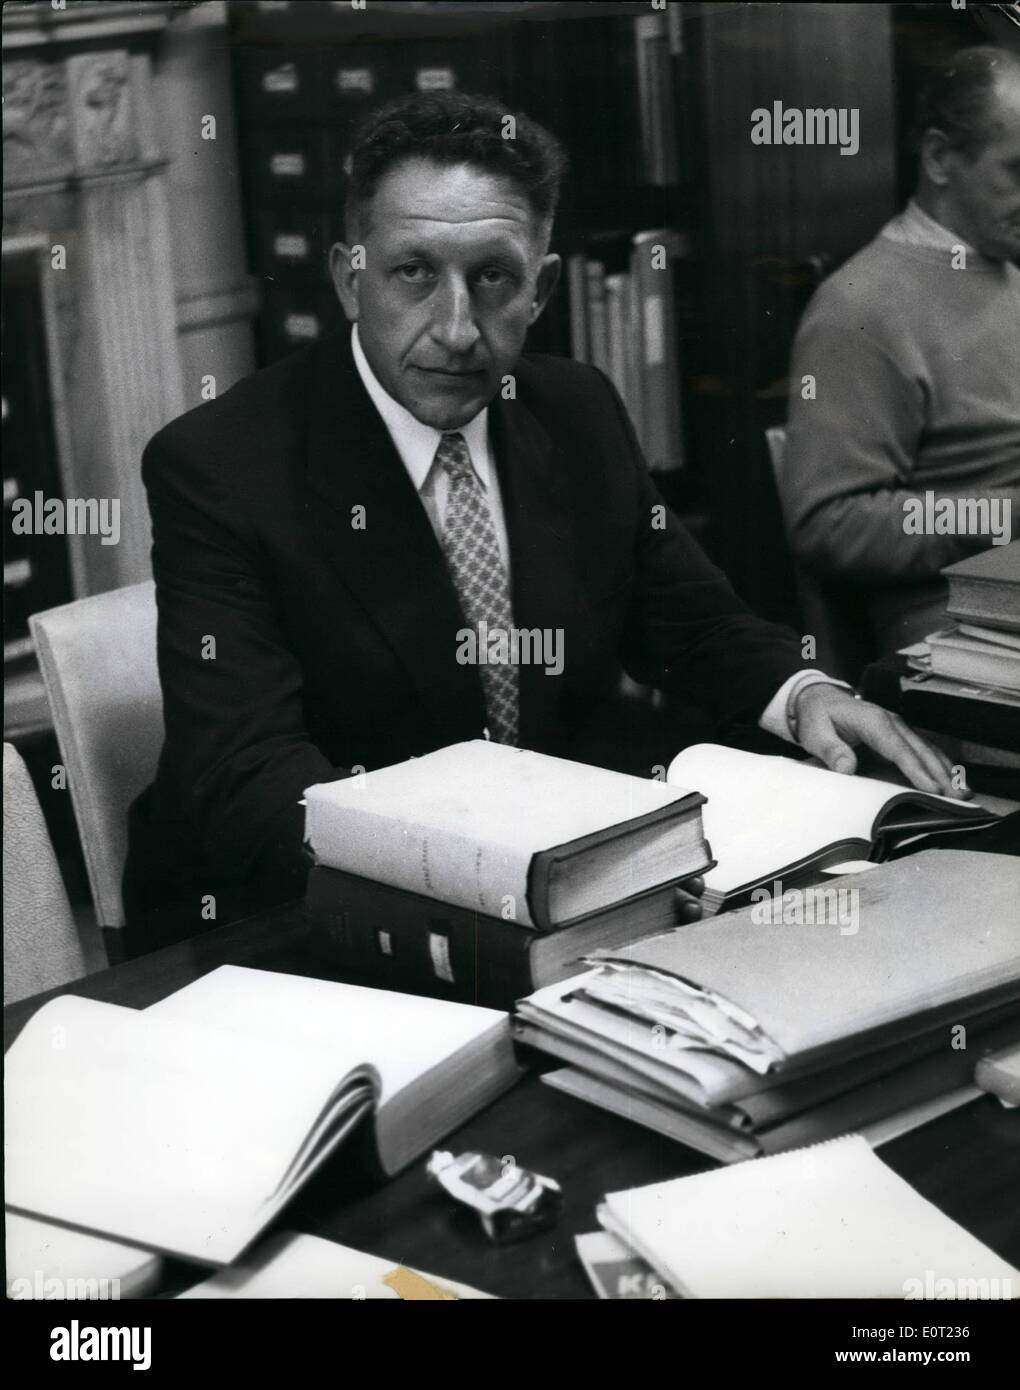 Jul. 07, 1960 - Commander Selinger - leader of the team who collected evidence for capture of Ex-Jew baiter Adolf Eichmann: Adolph Eichmann the ex Nazi Jew-baiter is passing his time in an Israel jail by writing his memoirs - his story of the murder of six million Jews. Commander selinger. Polish born ex-student of the London School of Eichmann sine his arrest in Argentine - is in London Accumulating data for the forthcoming trial of Eichmann . Commander Selinger is the boss of Bureau Six - the organisation set up in Israel to collect evidence against Eichmann - Stock Image